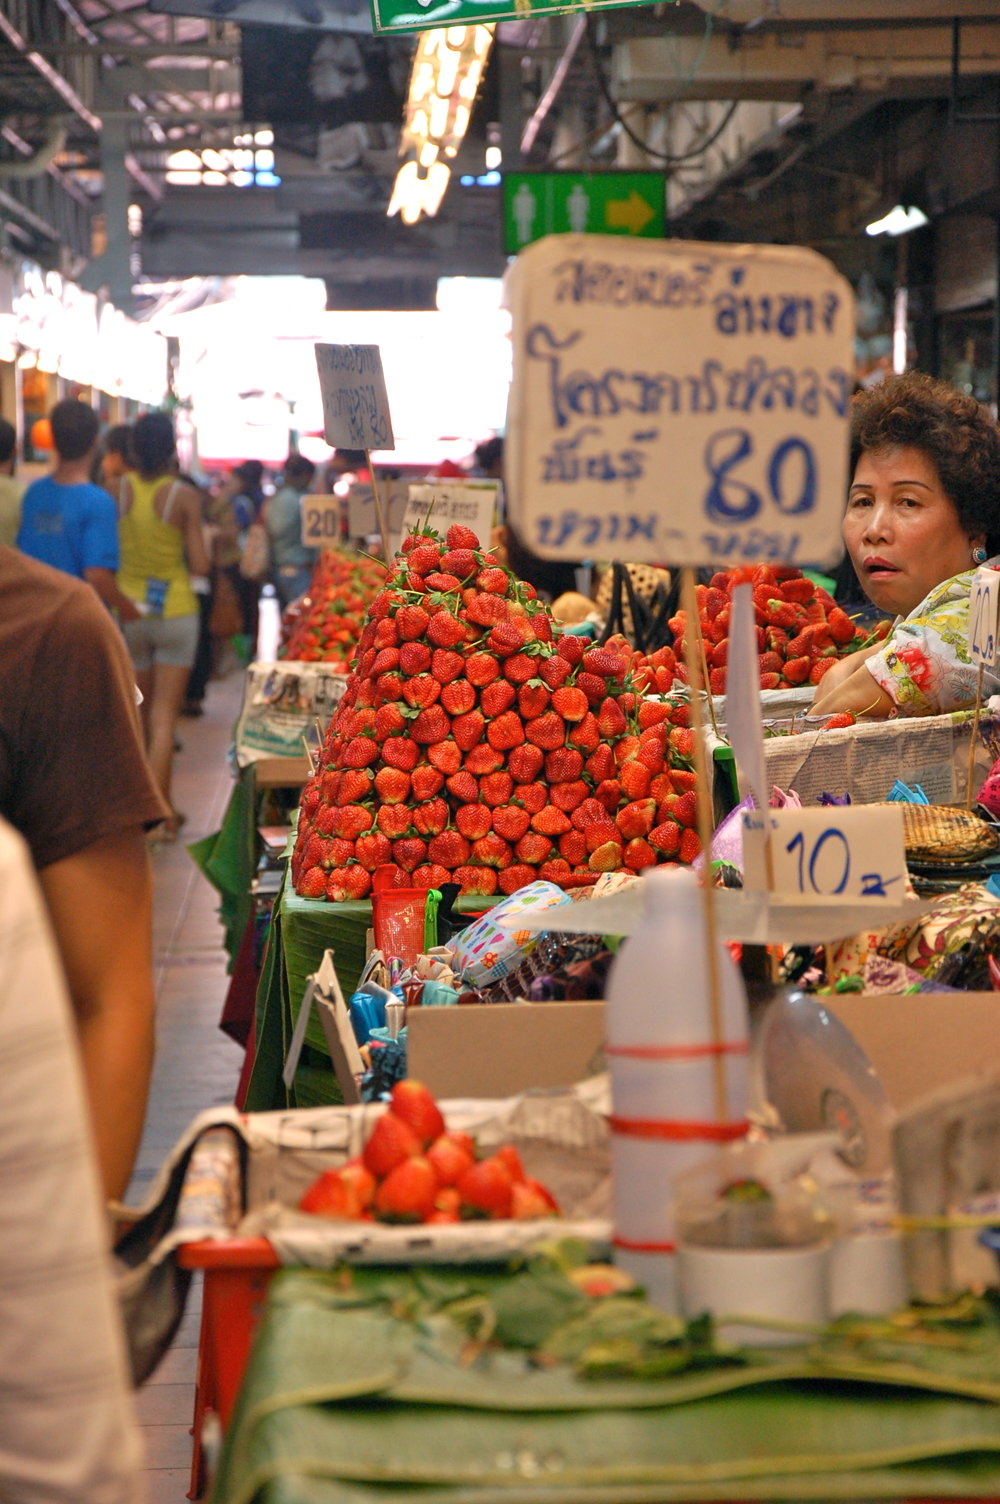 I'll take a dozen strawberries, please! (At Warowot Market)